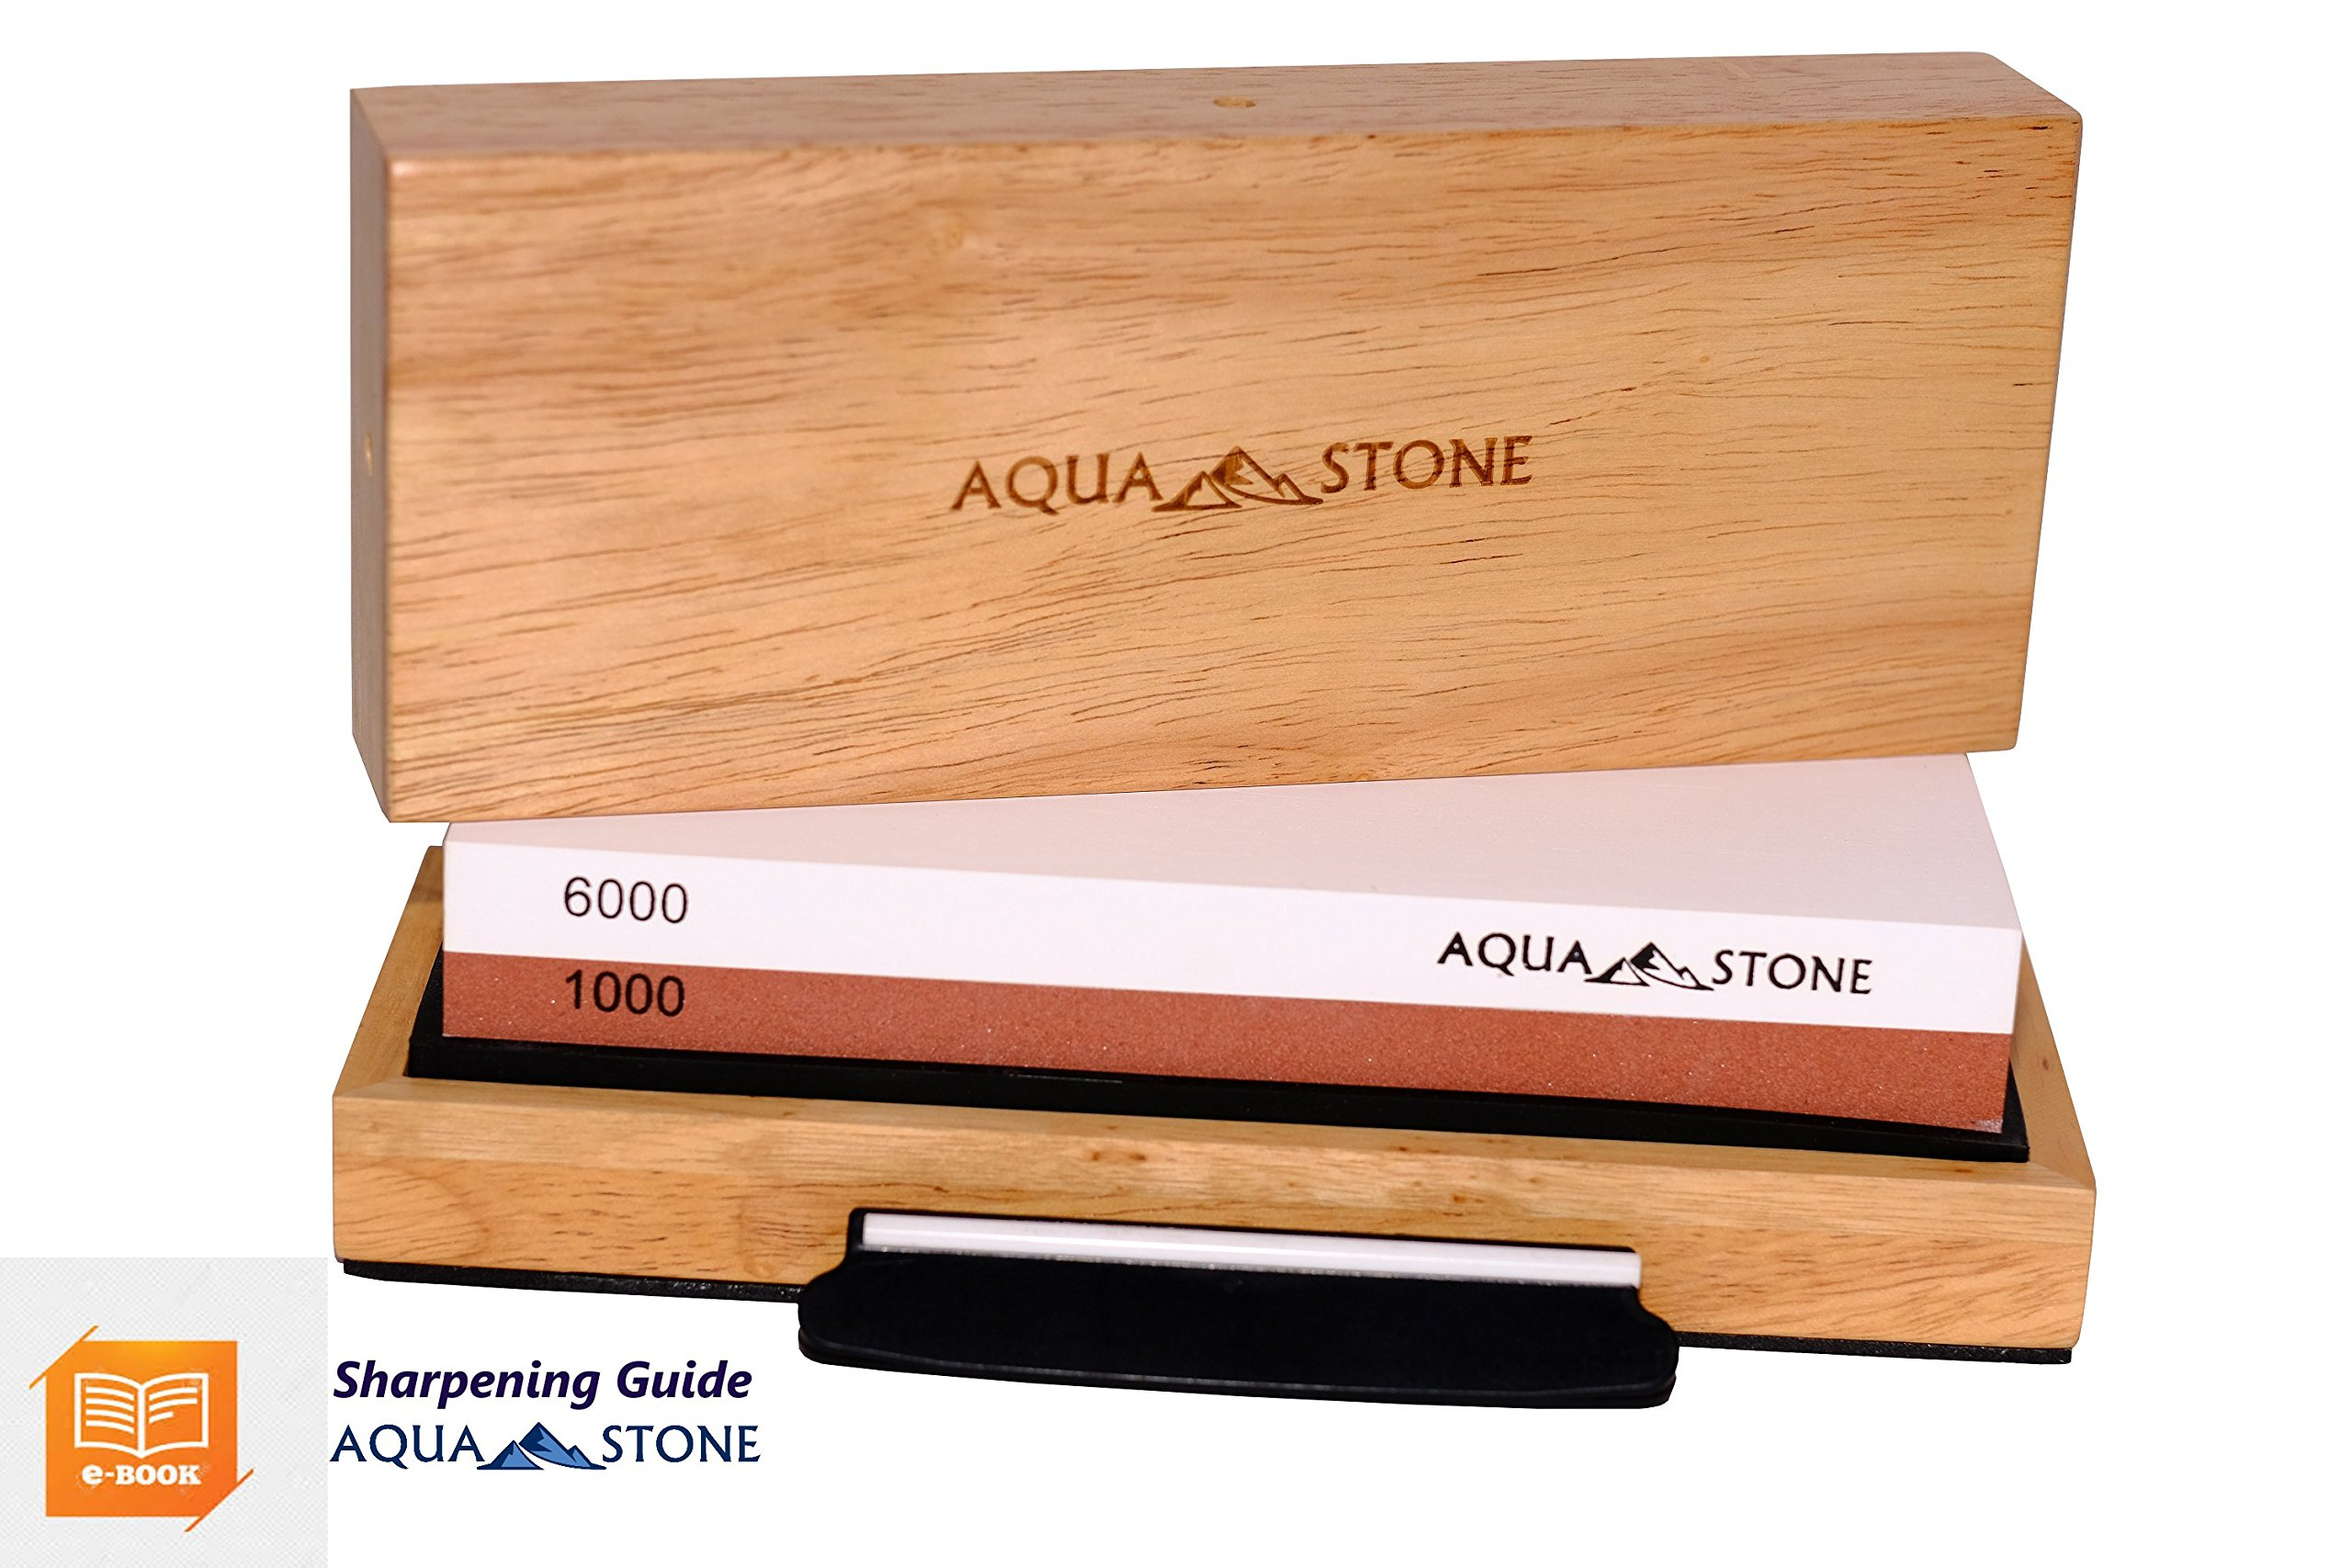 Professional Knife Sharpener 2 Side Sharpening Stone Kit For Chefs, Home Kitchen Knives.Whetstone Grit 1000/6000 Watersone,NonSlip Wood Base, FREE Angle Guide, Silicone Base with Stylish Wood GIFT Box